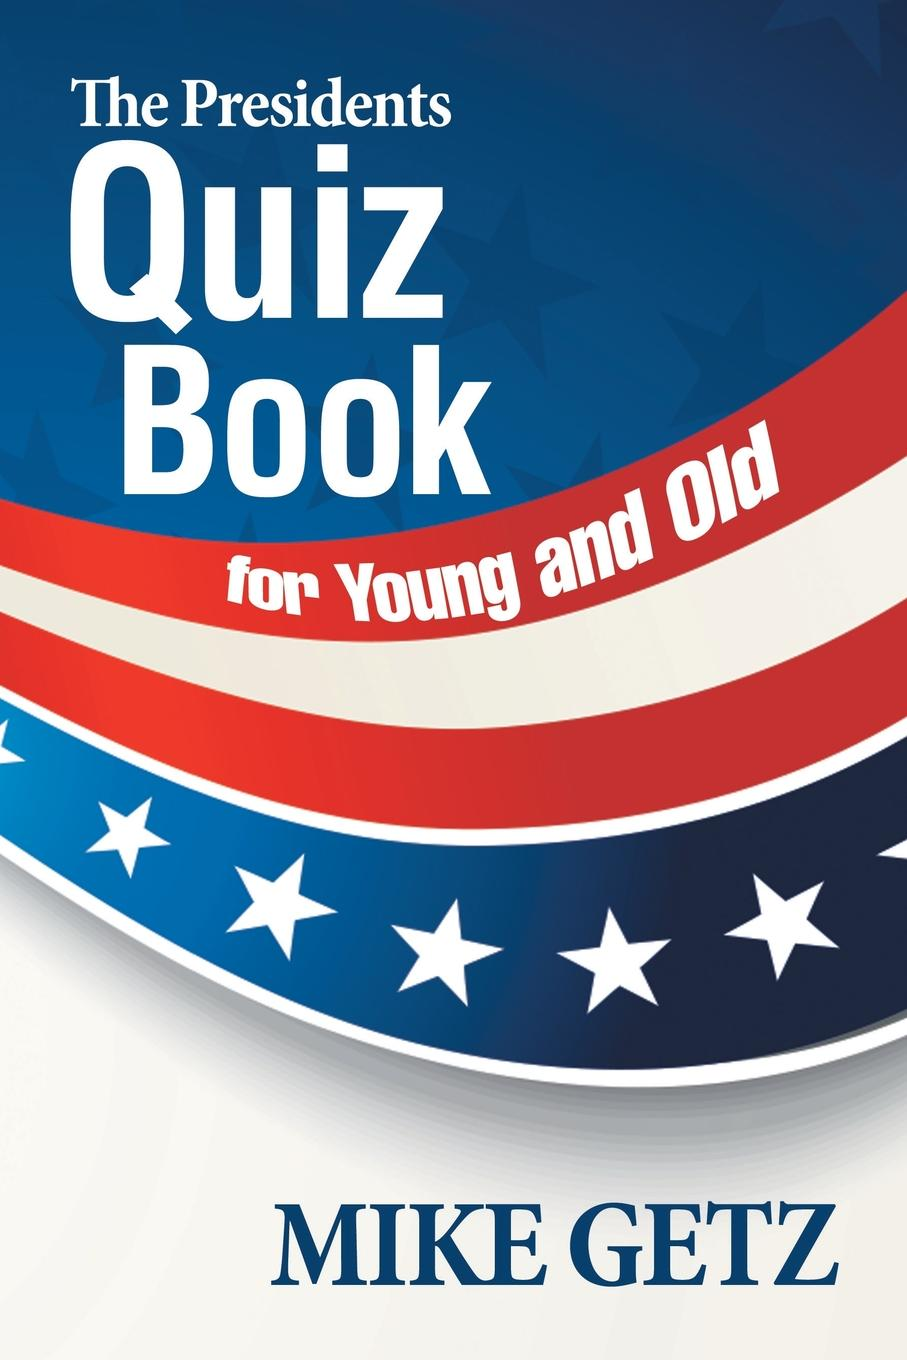 MIKE GETZ The Presidents Quiz Book for Young and Old lovebook the quiz book for couples